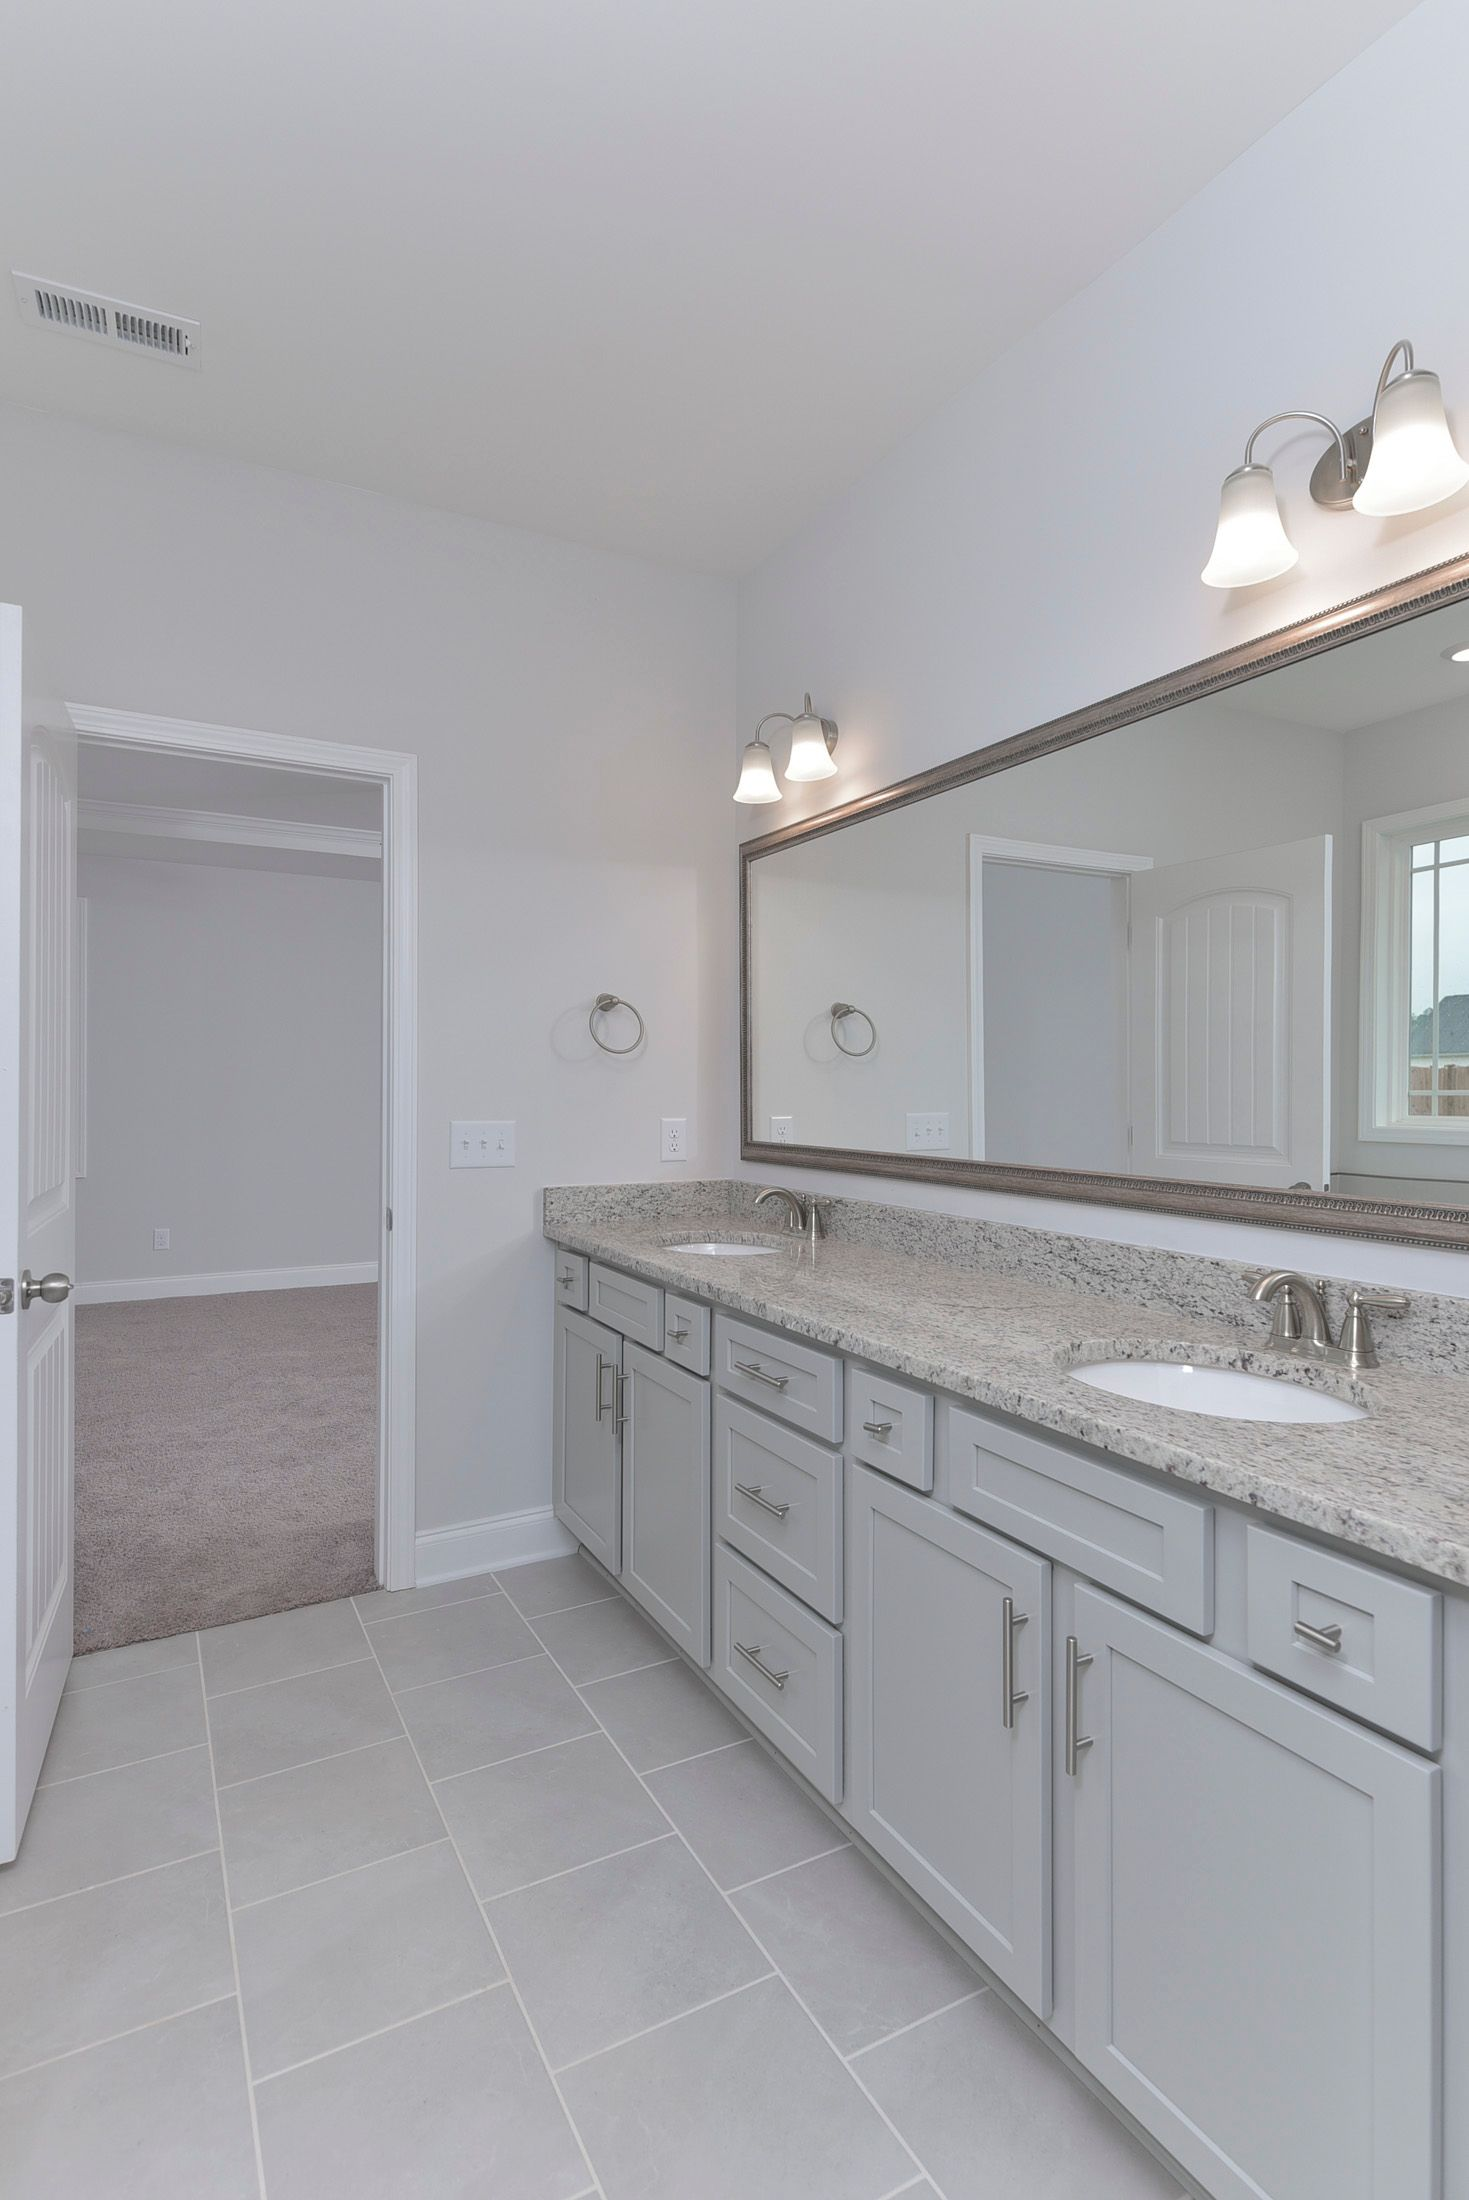 Bathroom featured in the Caldwell By Eastwood Homes in Columbia, SC